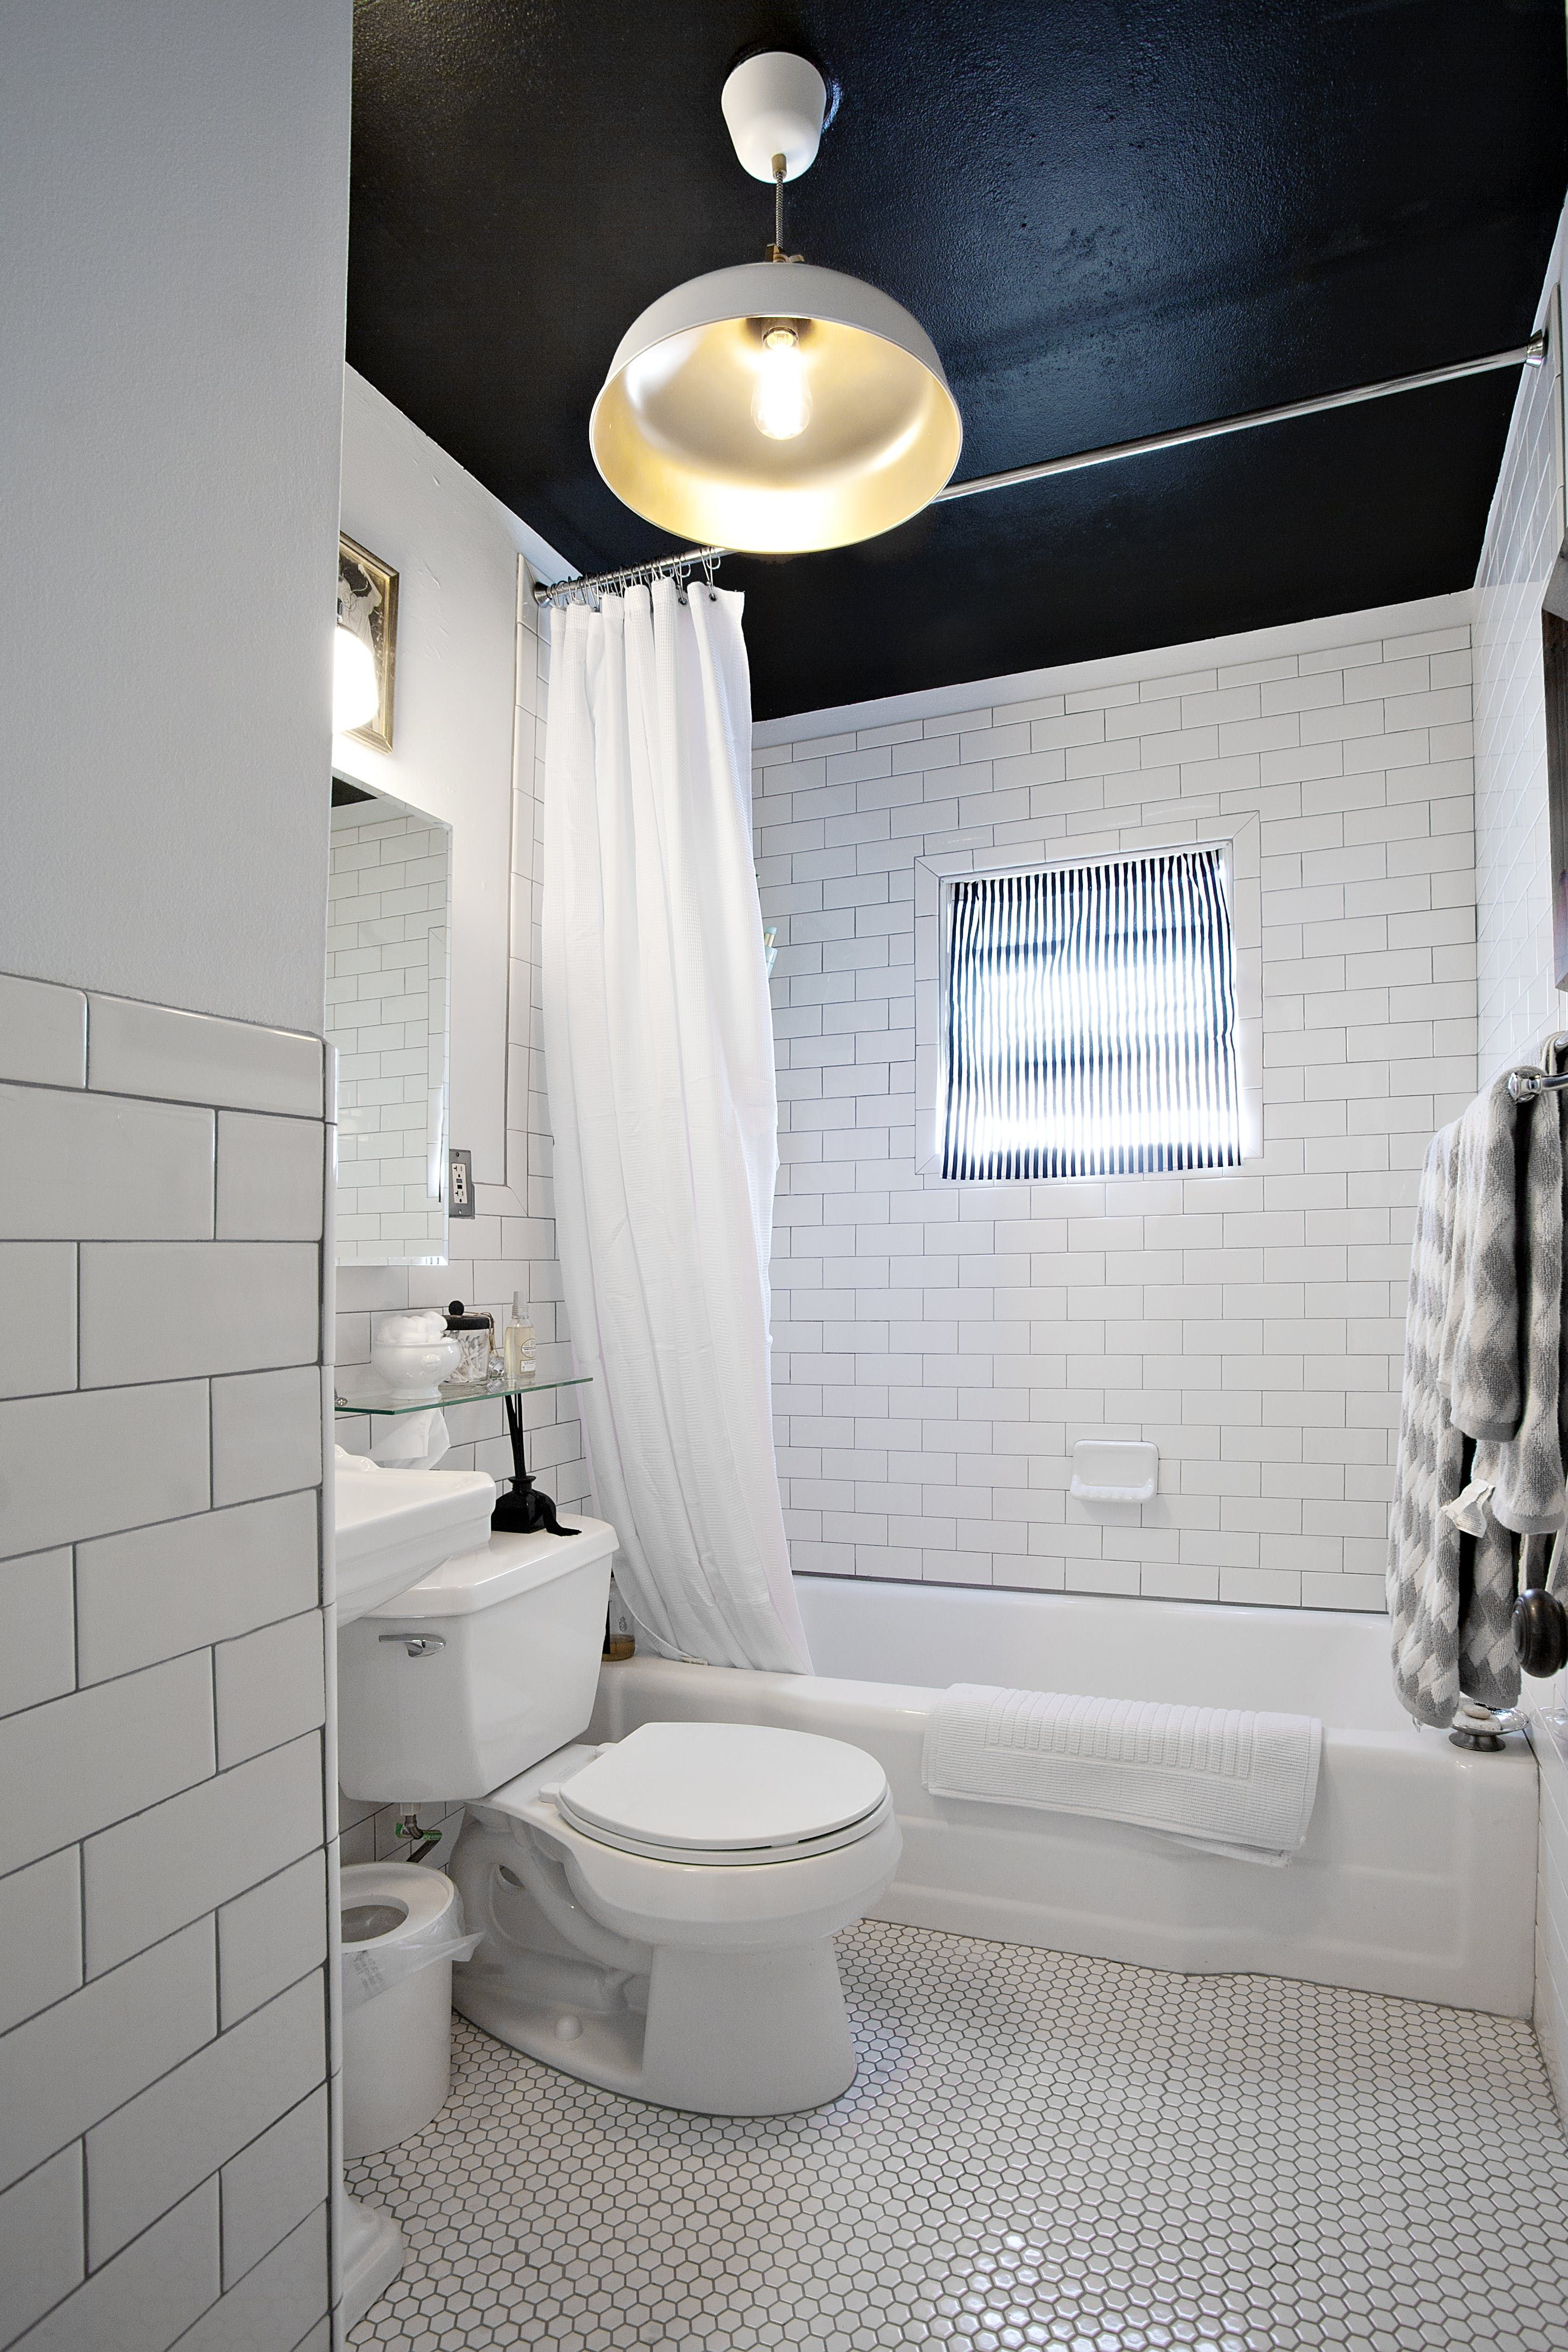 9 Ways To Transform Your Completely Average Bathroom Without Remodeling Bathroom Inspiration Bathrooms Remodel Ceiling Paint Colors